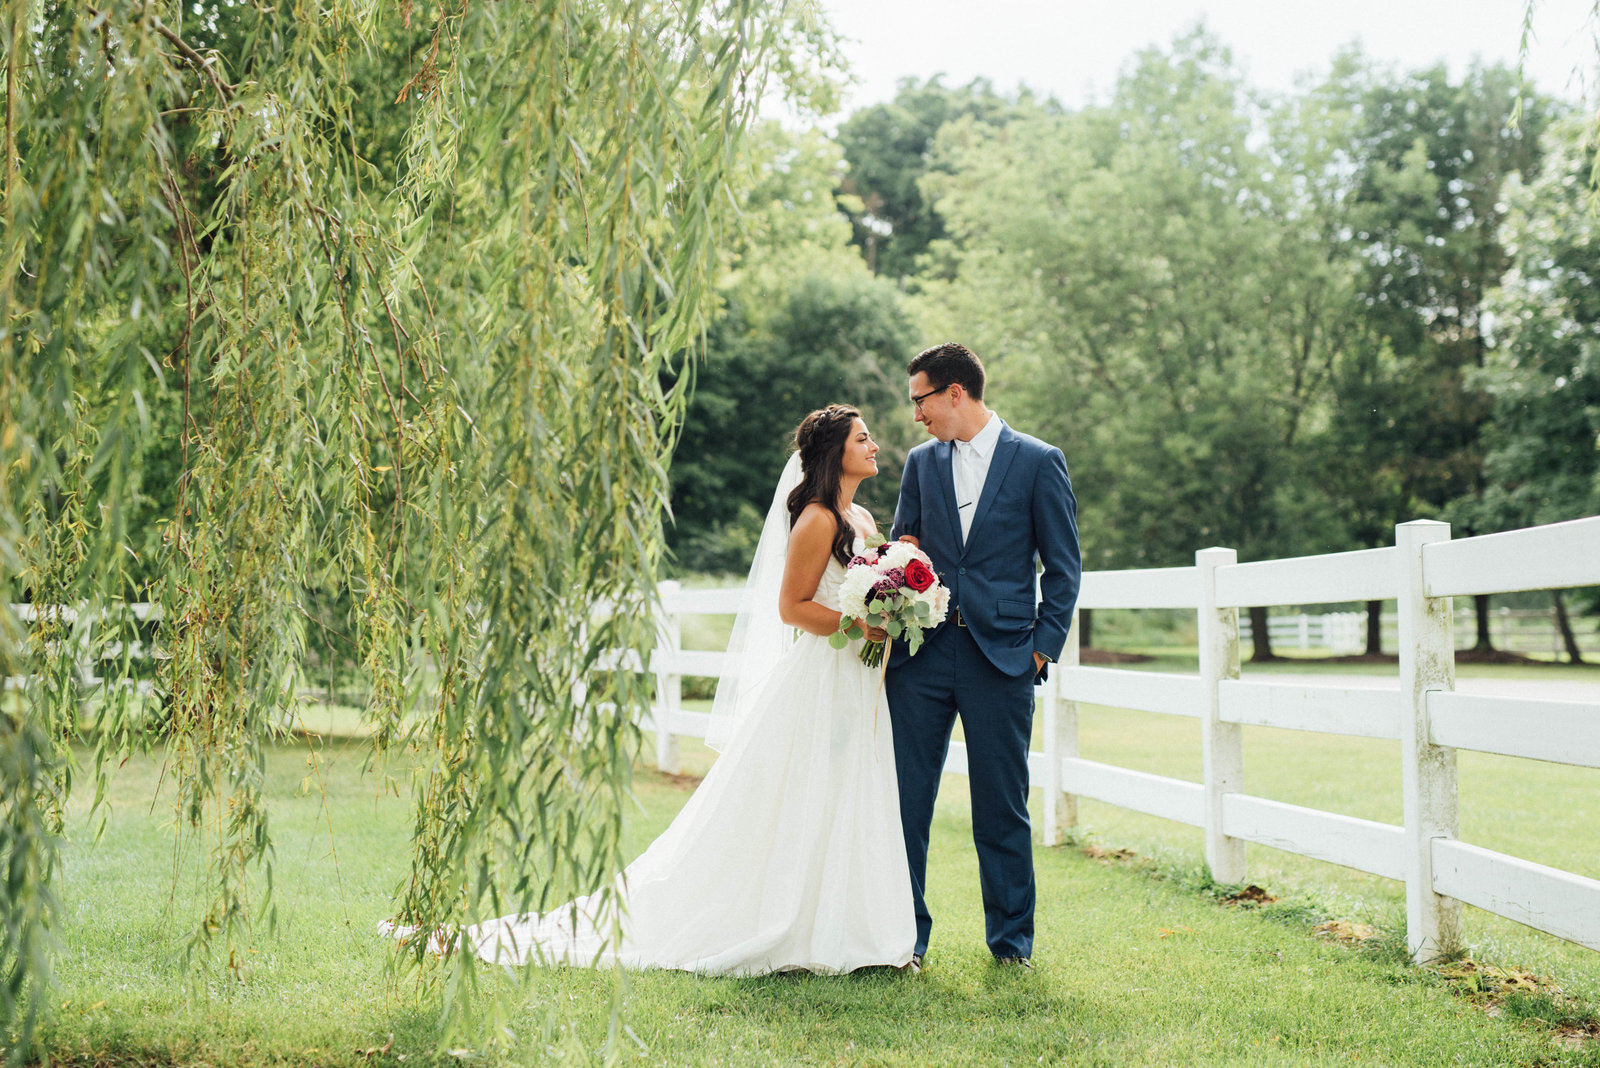 MrandMrs Combs 2018- AMHP-1534